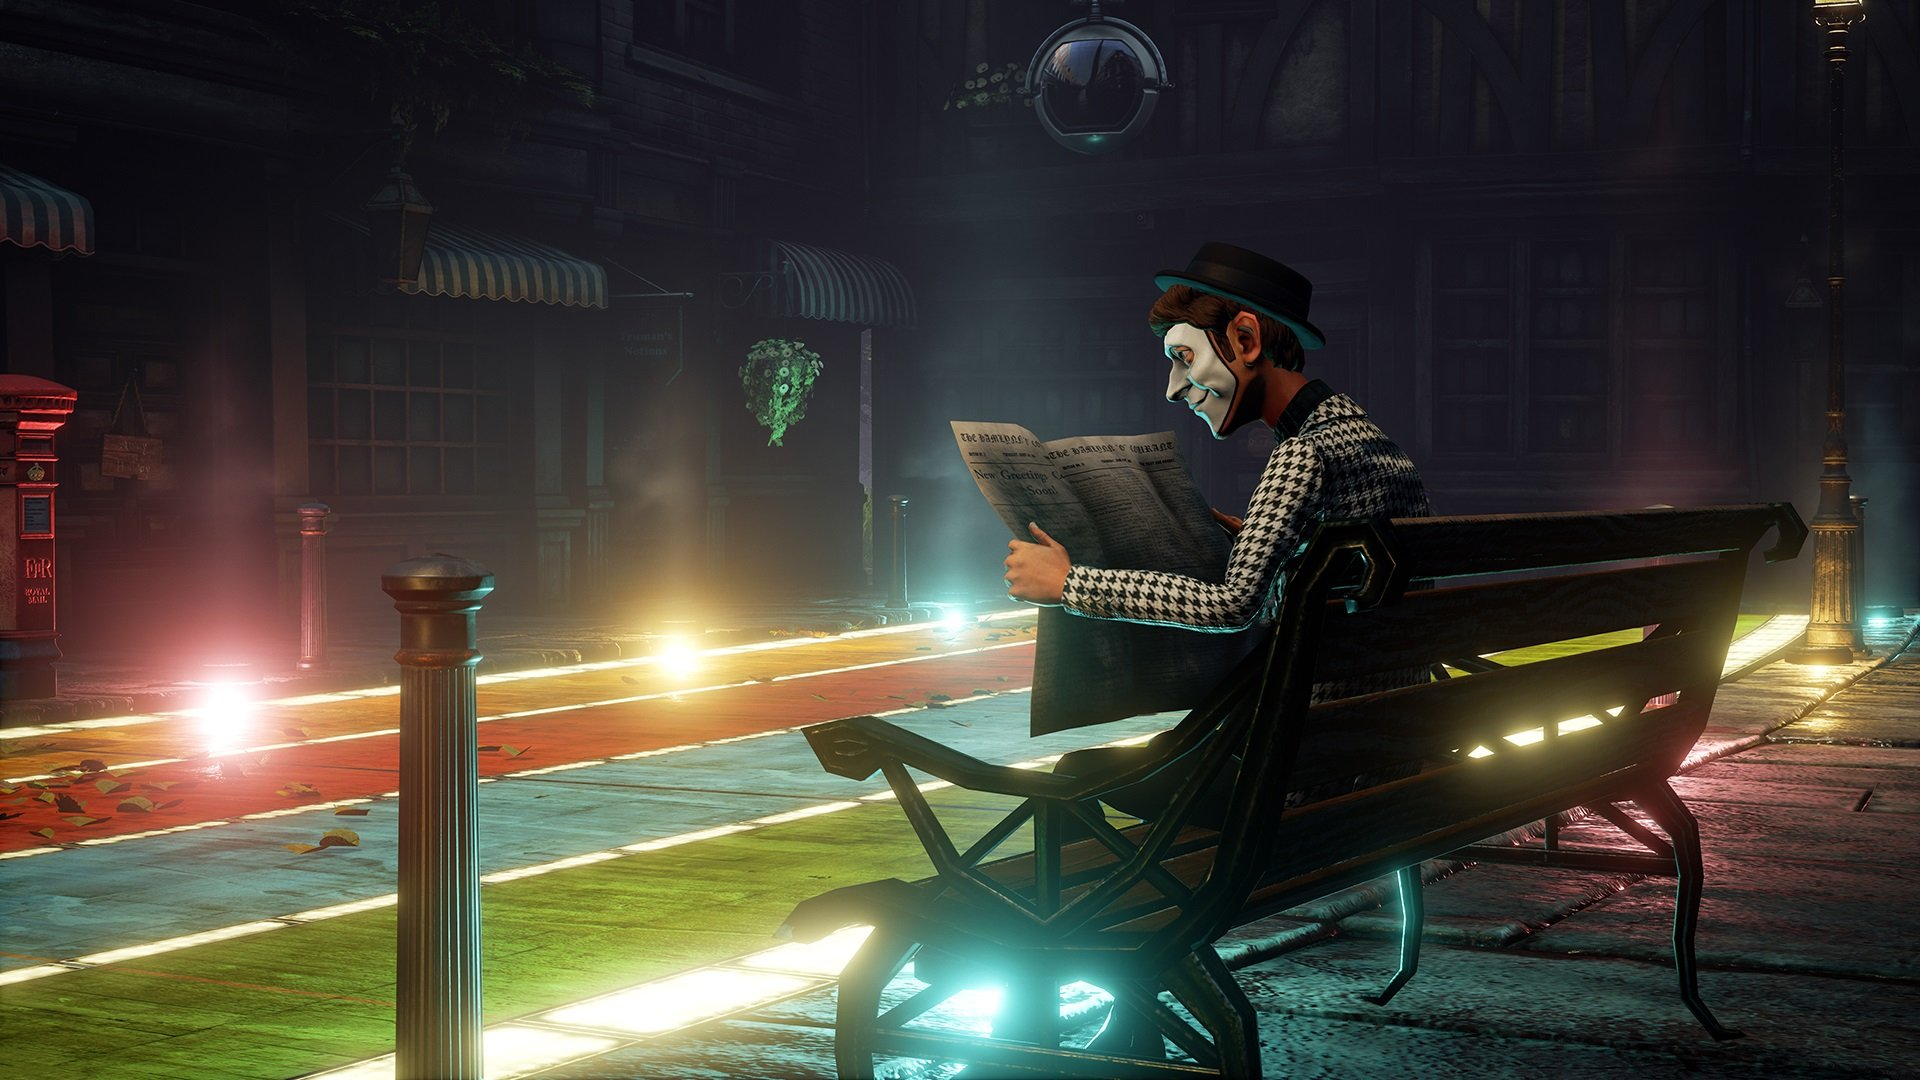 While a solid release date is yet to be decided, We Happy Few should